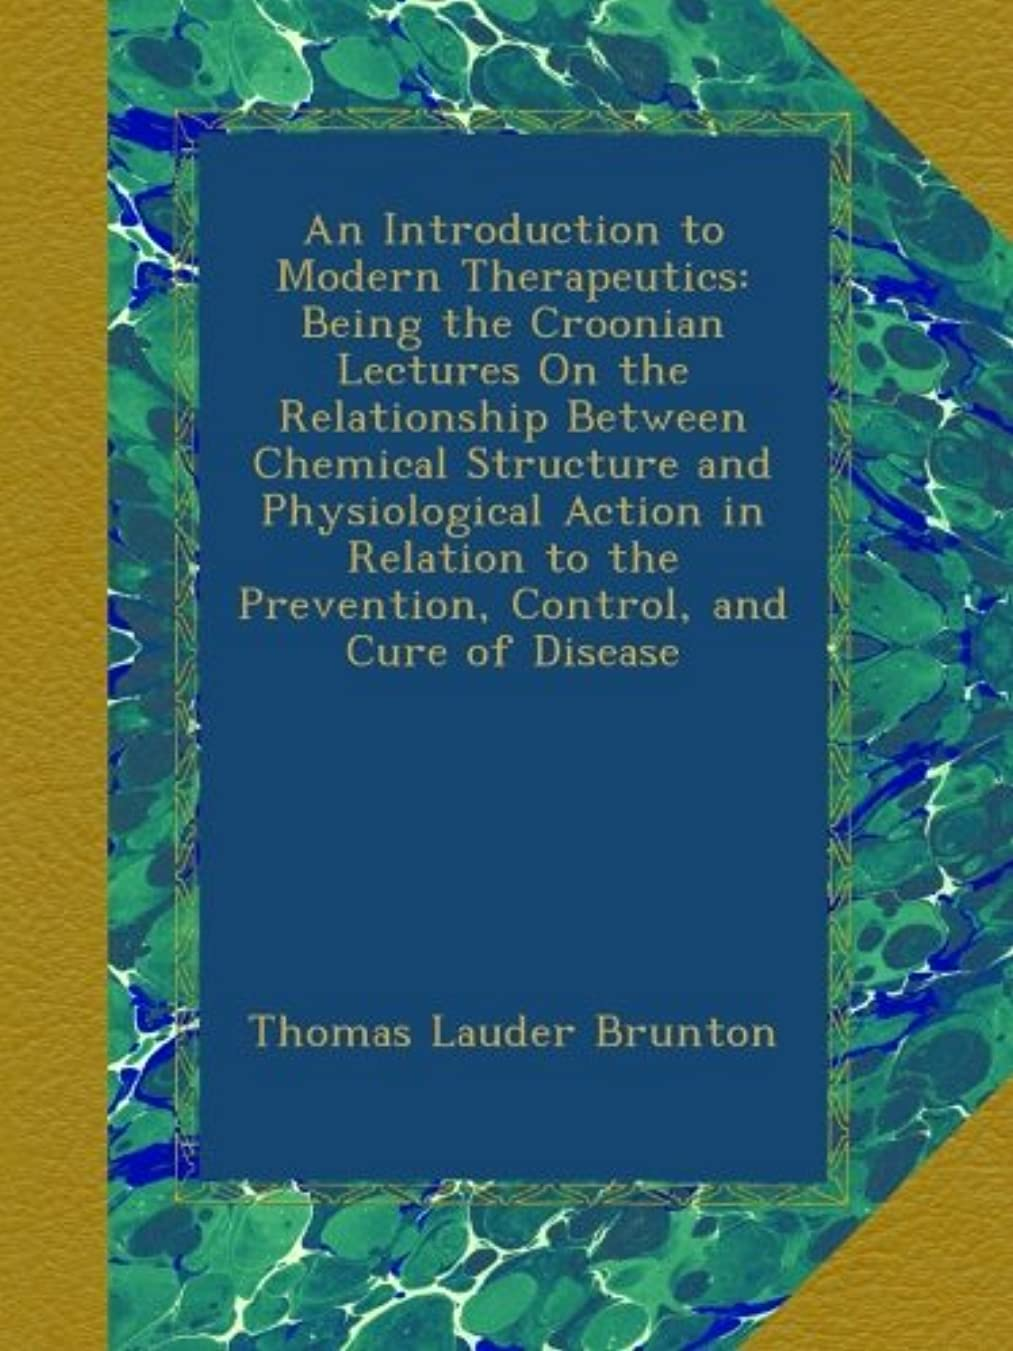 An Introduction to Modern Therapeutics: Being the Croonian Lectures On the Relationship Between Chemical Structure and Physiological Action in Relation to the Prevention, Control, and Cure of Disease